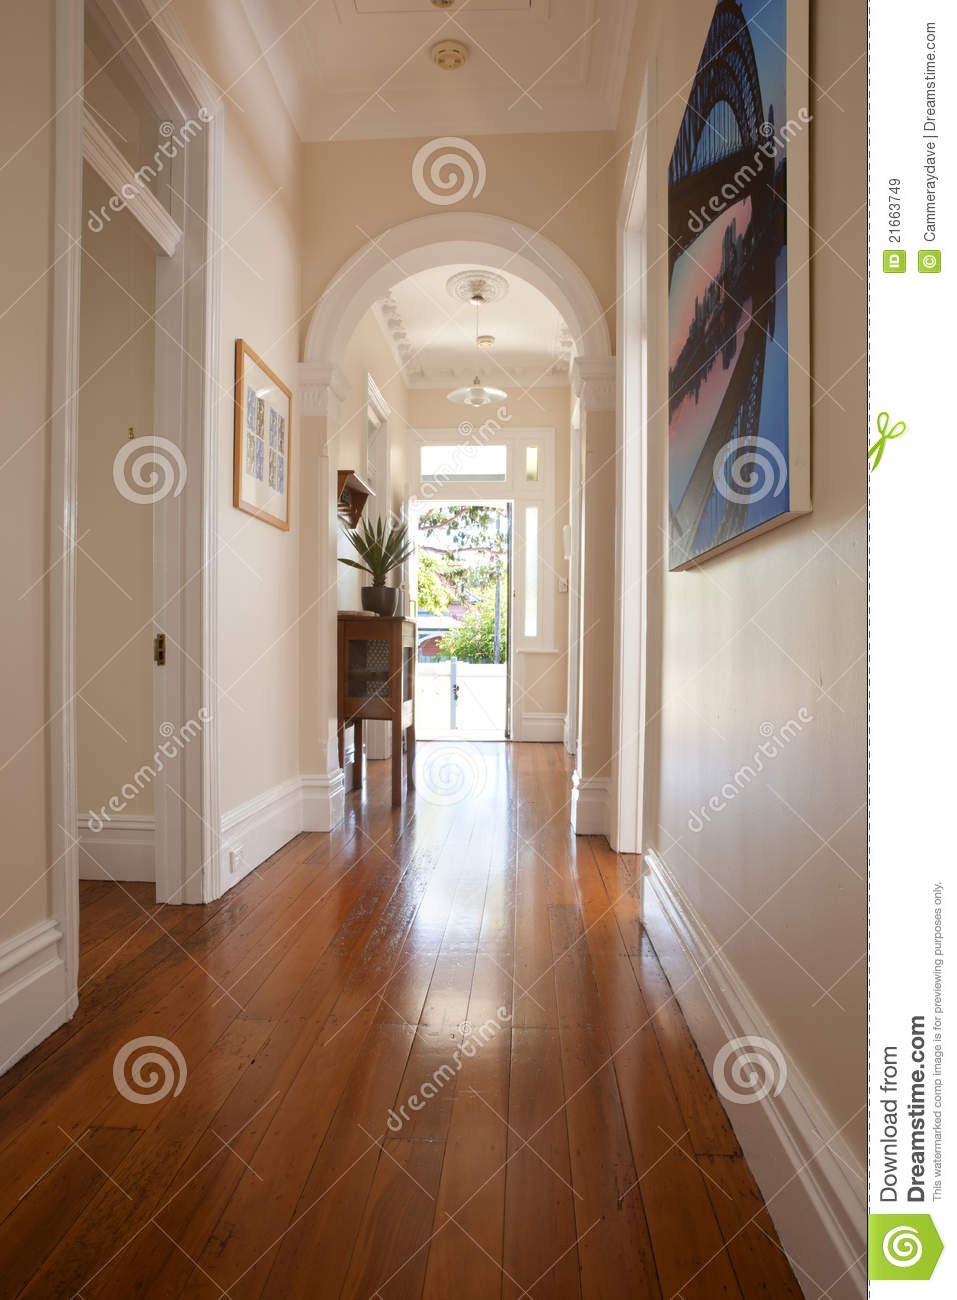 Interior Hallway Entrance Doorway Royalty Free Stock Images - Image ...